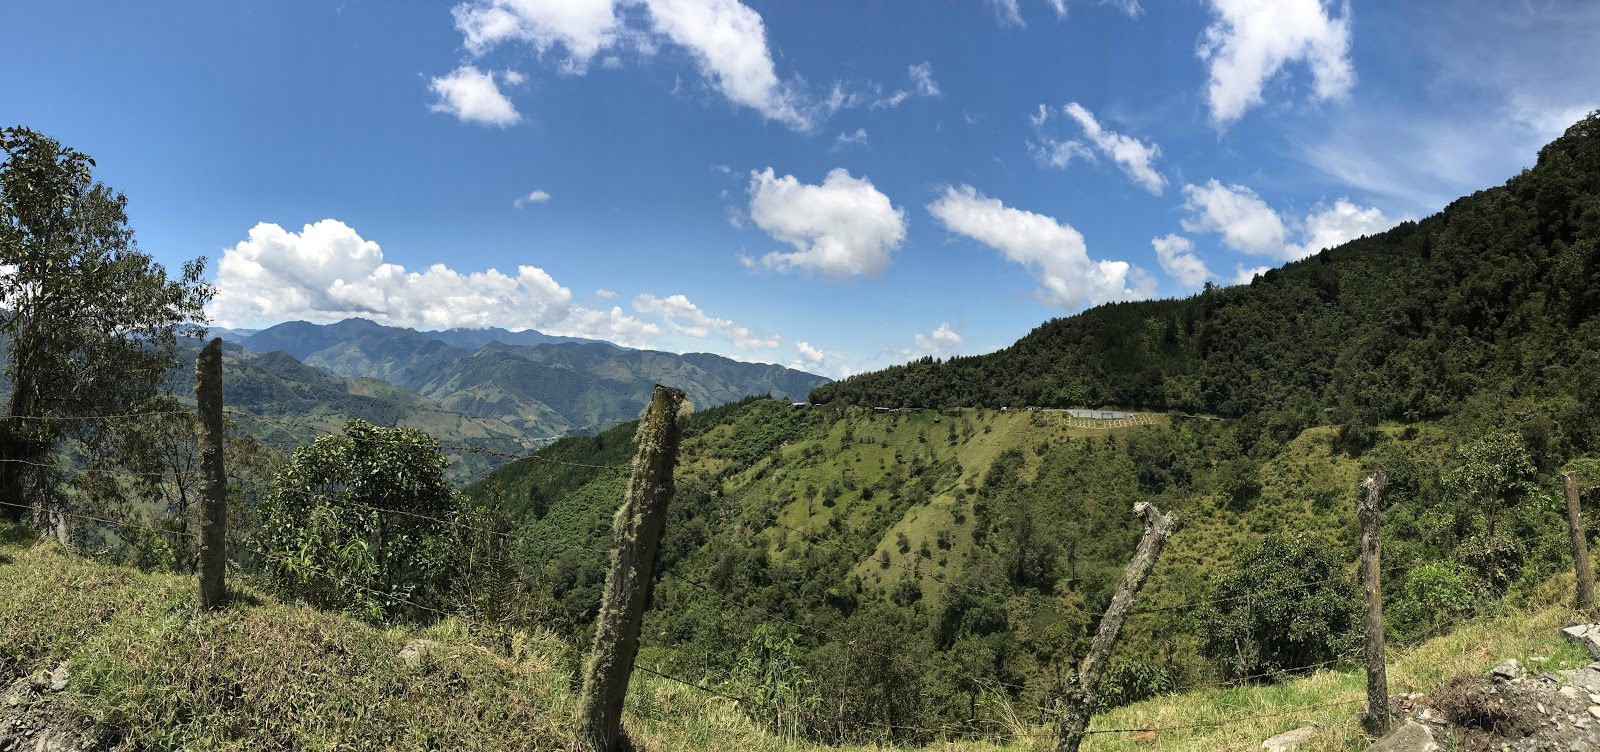 Riding bicycle up Hwy 50 to Alto de Letras - panorama of roadway, moss fence and mountains